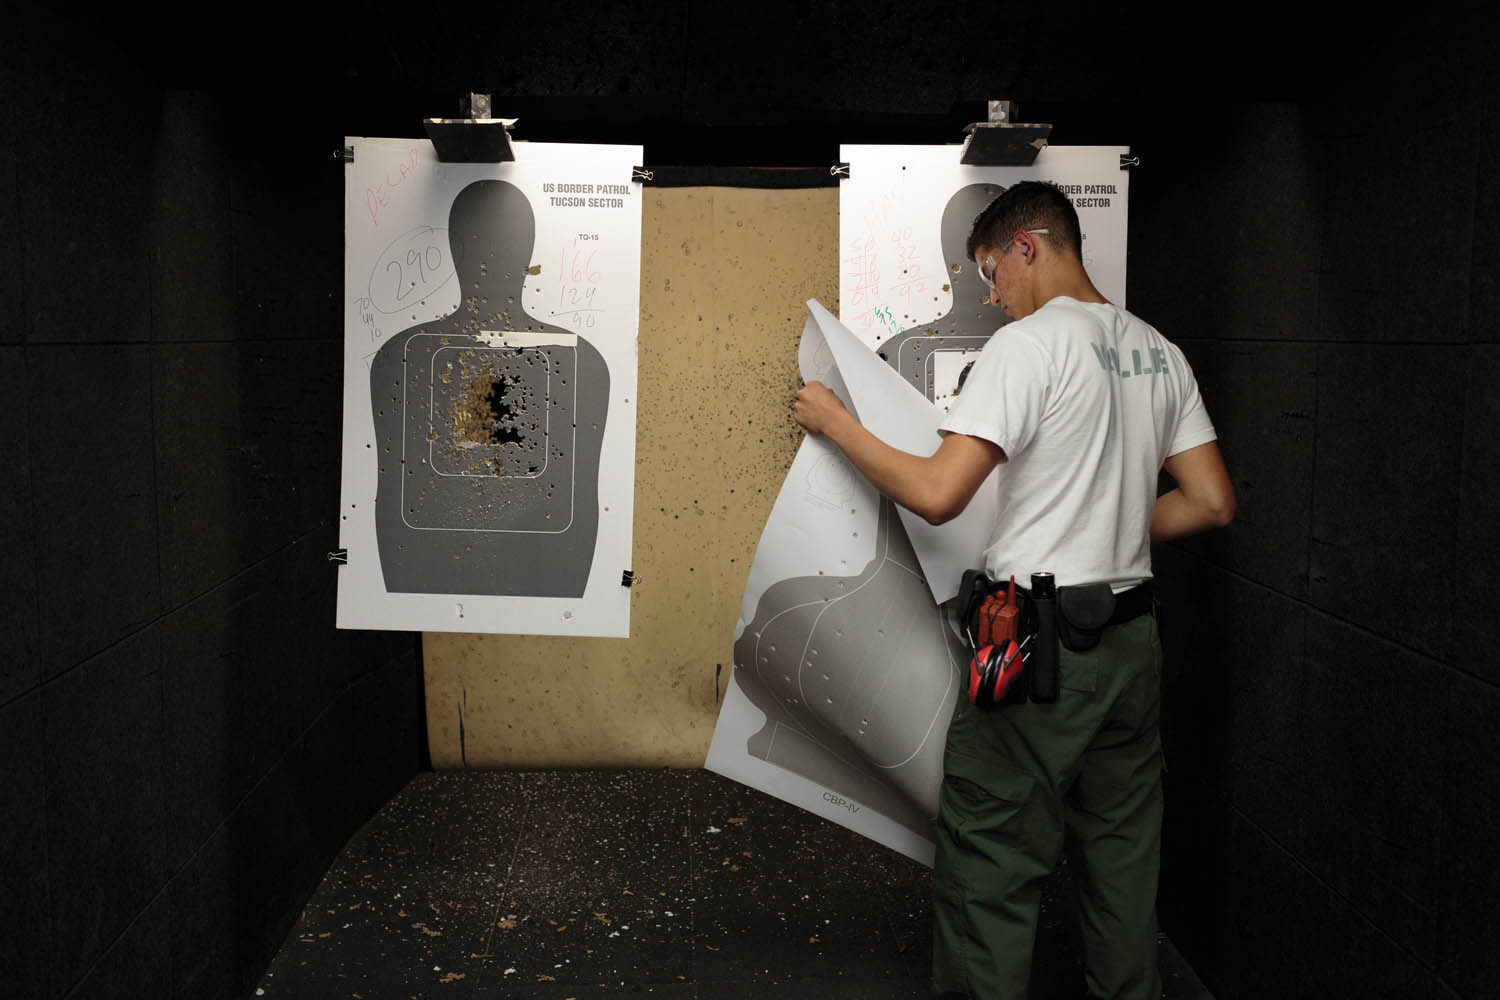 On the third day of Academy Week, students from the Border Patrol Explorer Program participate in a firearms-training class. Photographed by Sarah Blesener